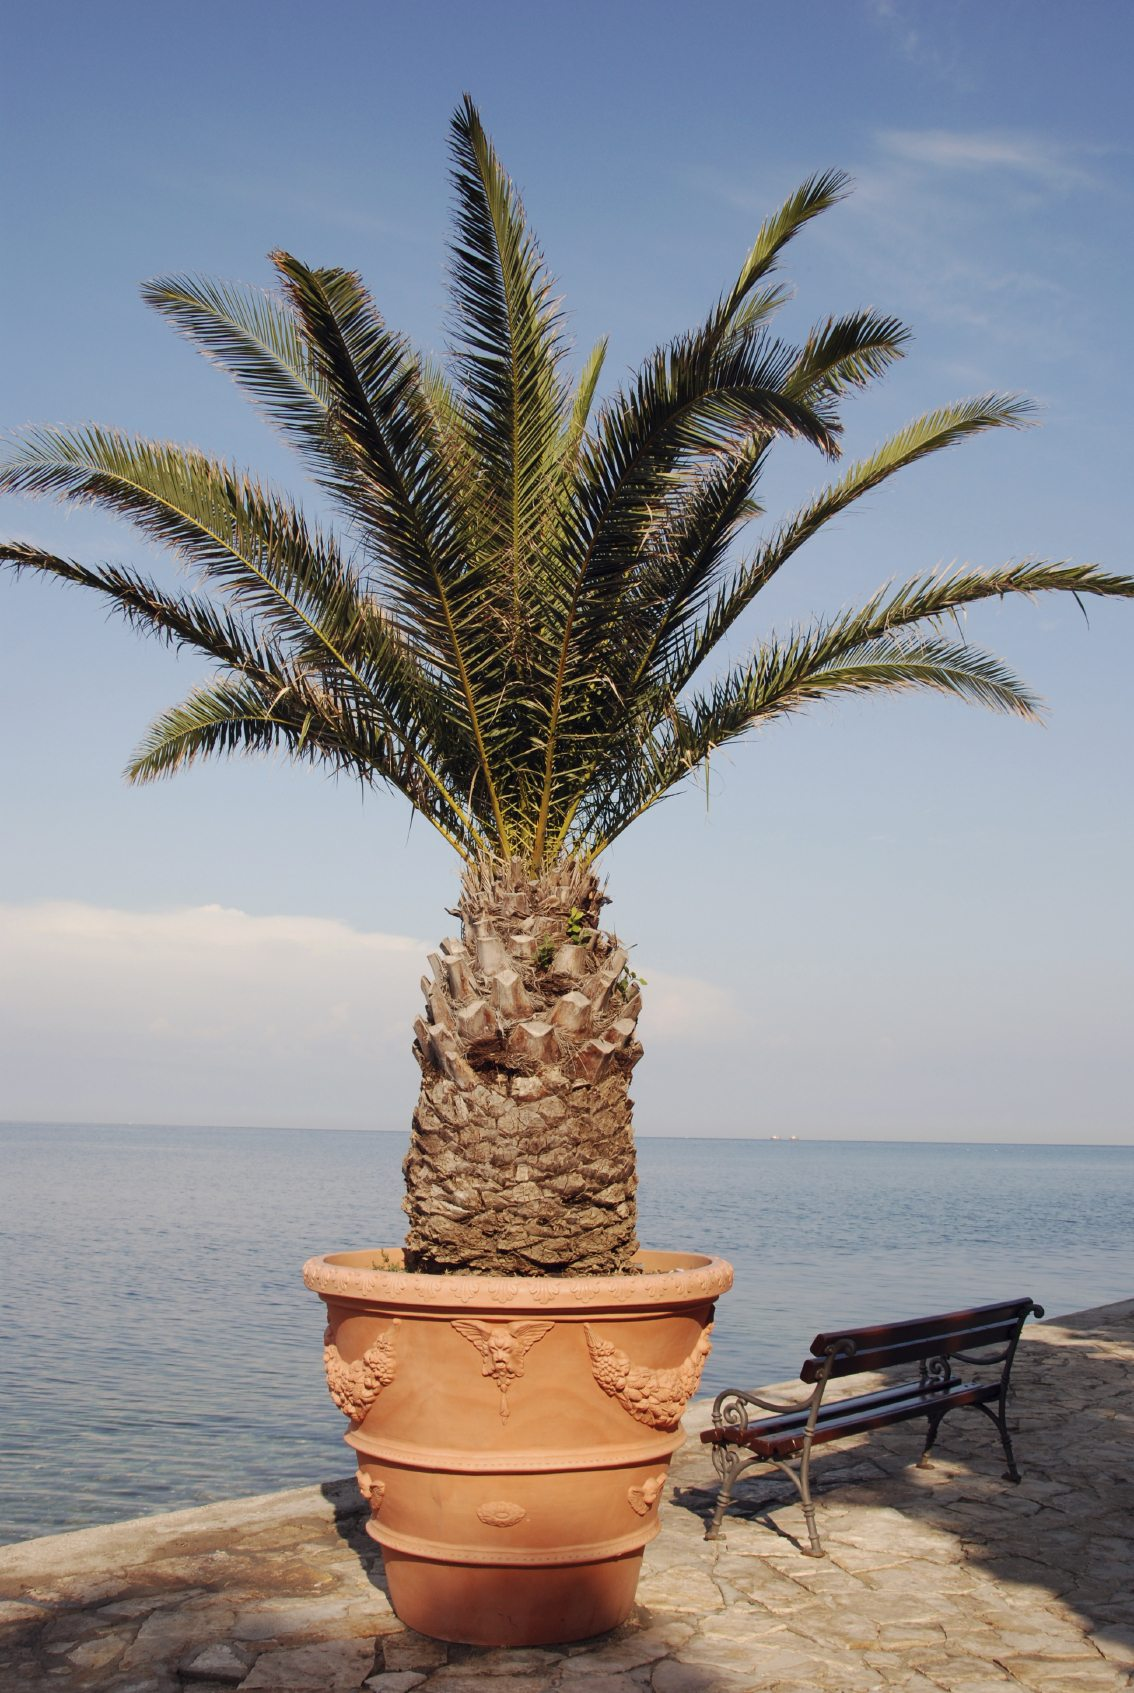 potted-palm Palm Trees For Houseplants on palm tree bonsai, palm tree floral, palm tree evergreen, palm tree nursery, palm tree tree, palm tree wreath, palm tree food, palm tree vegetable, palm tree outdoor, palm tree seedlings, palm tree roses, palm tree planting detail, palm tree fossil, palm tree vines, palm tree bamboo, palm tree green, palm tree nature, palm tree lawn, palm tree shrub, palm tree water,